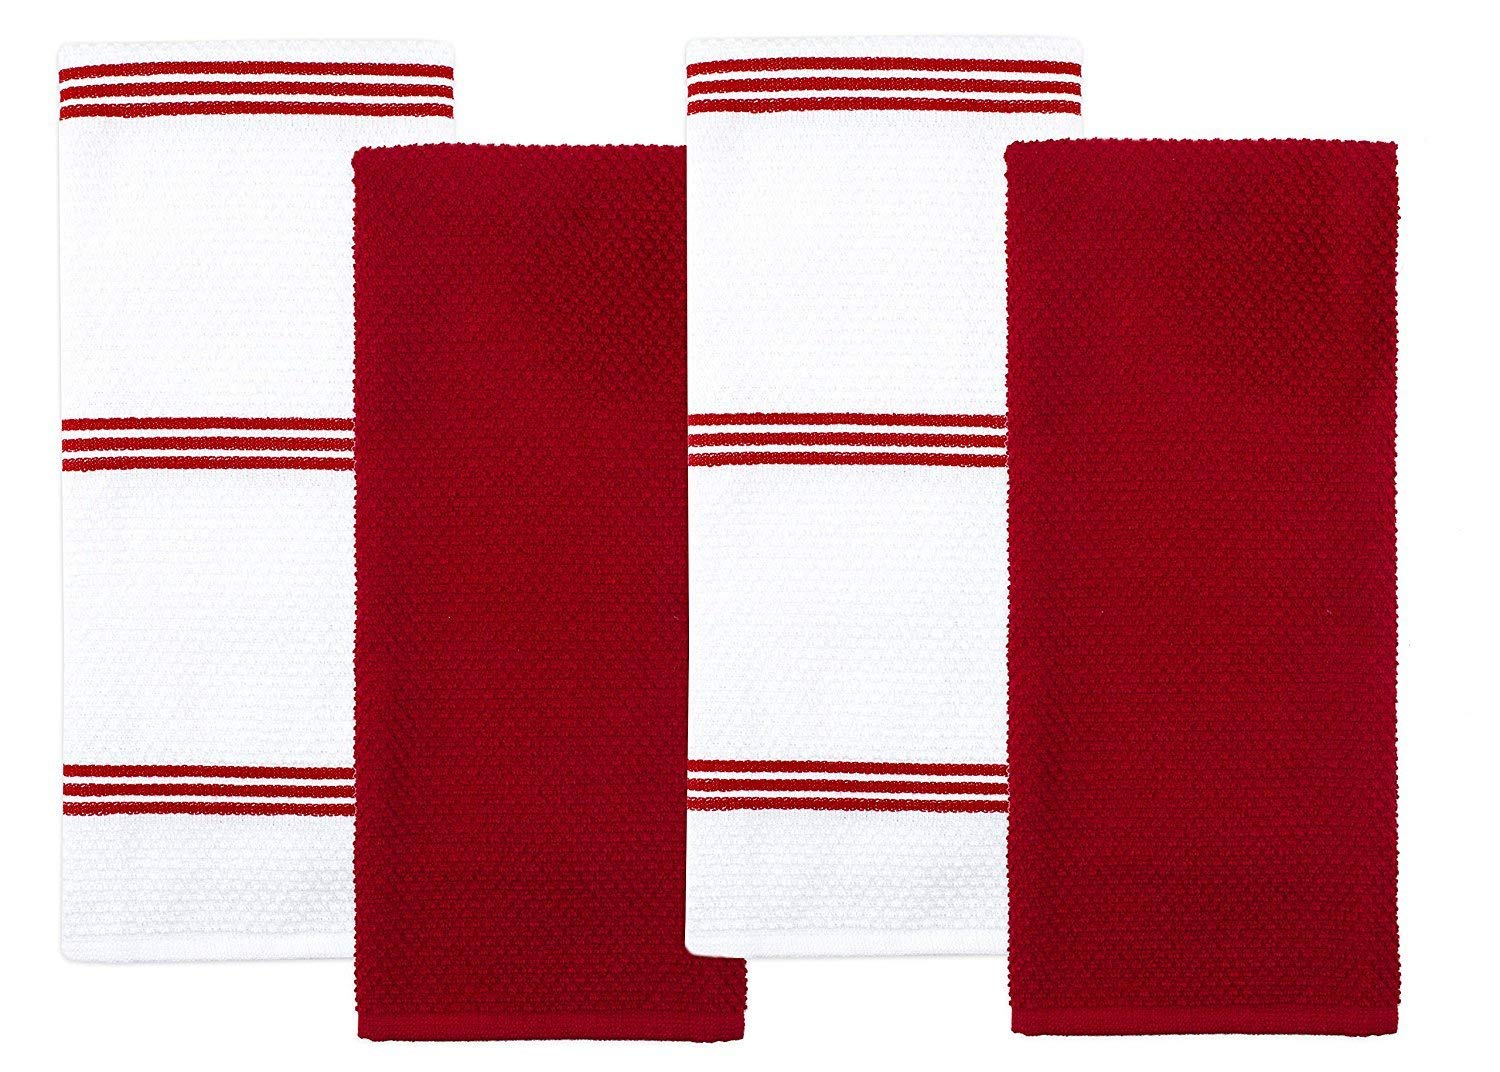 Sticky Toffee Cotton Terry Kitchen Tea Towel, 4 Pack, 28 in x 16 in (Red)